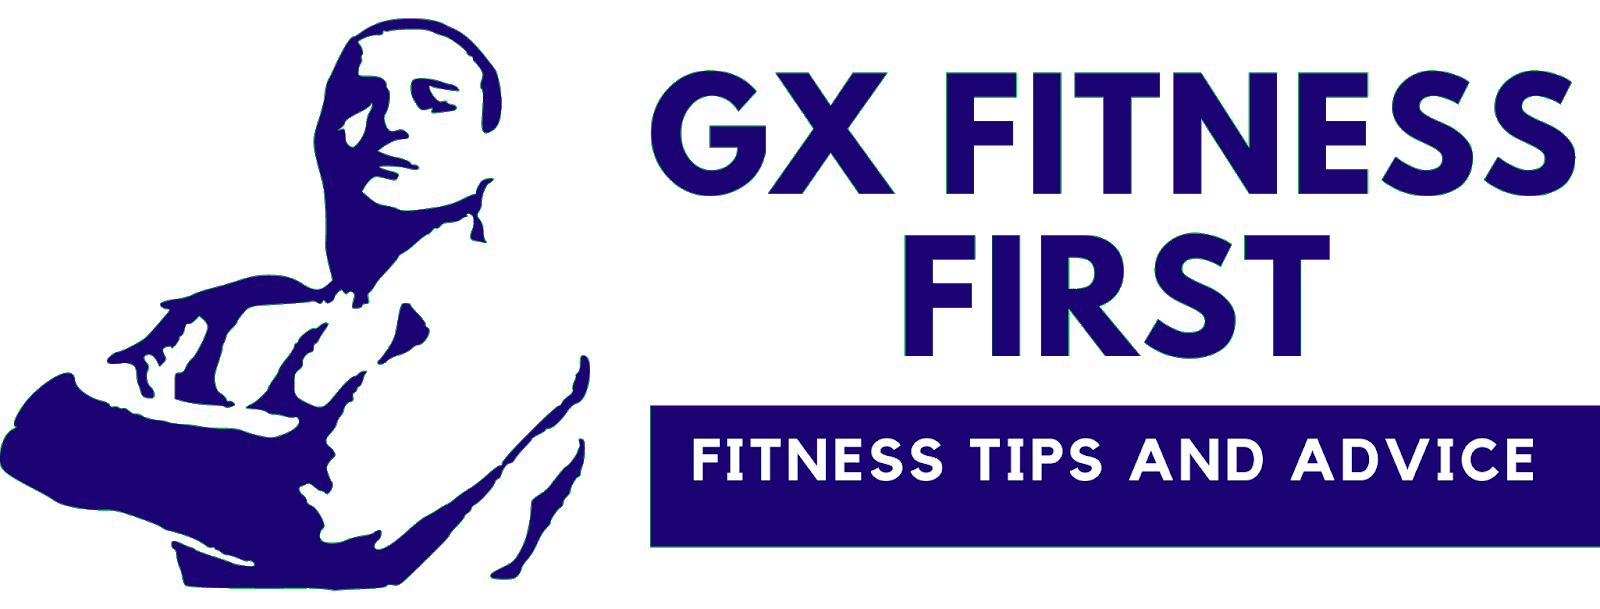 GX Fitness First